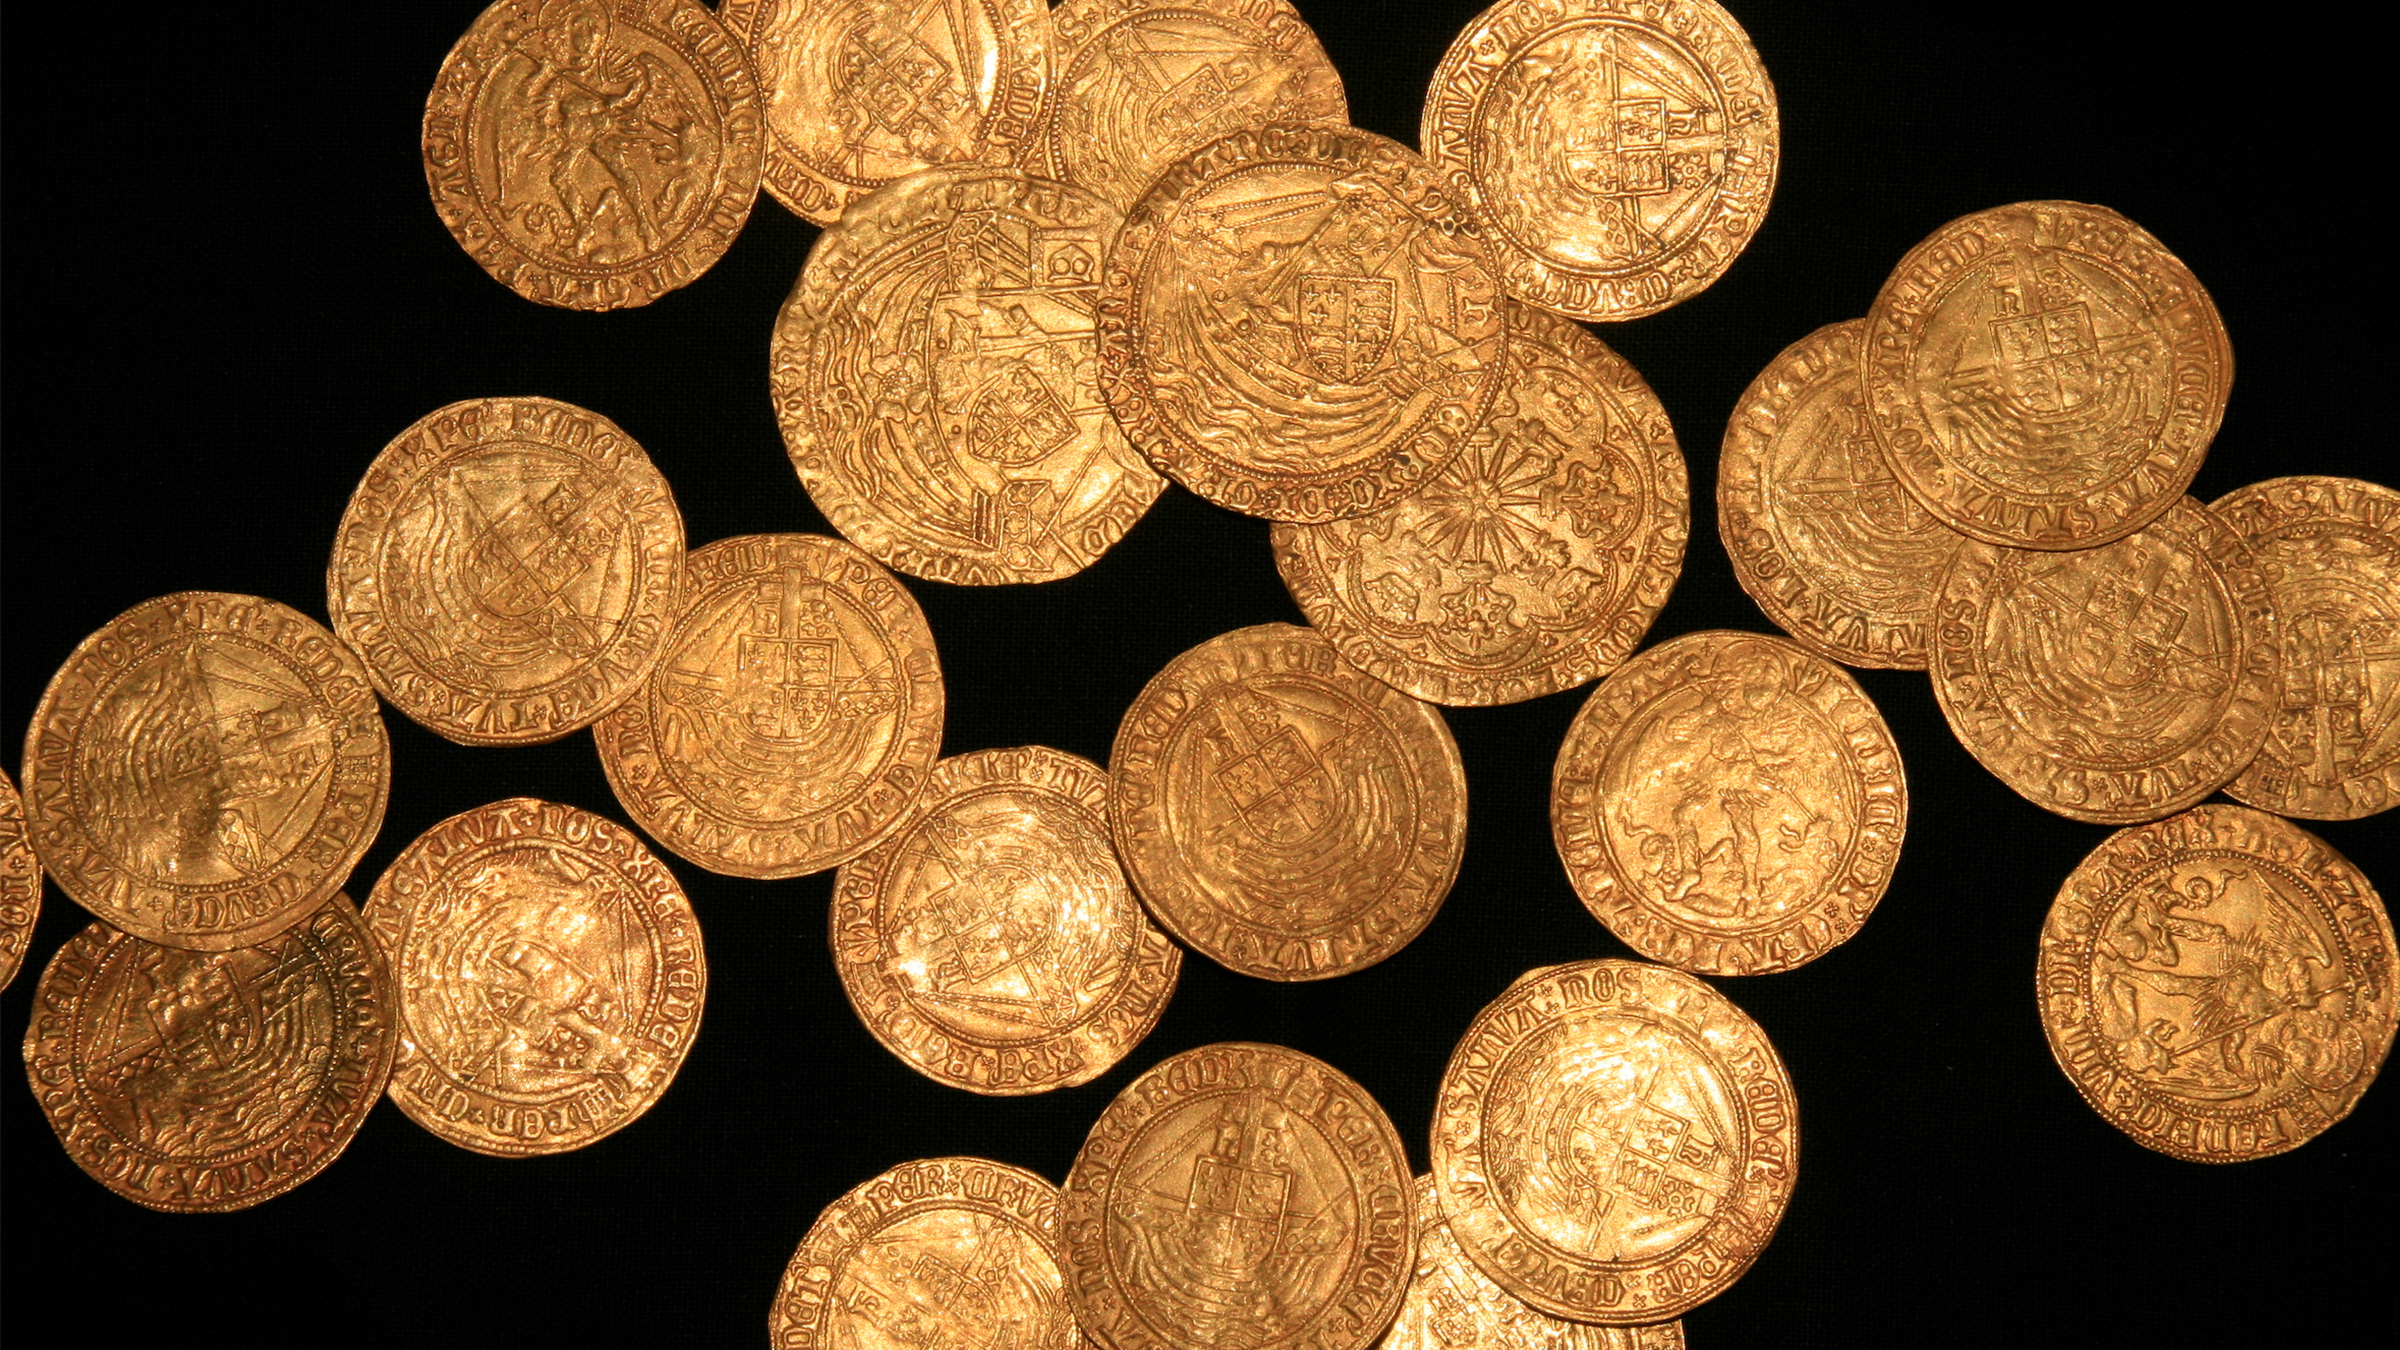 The stash of 63 gold coins and one silver coin dates to the time of Edward IV to Henry VIII.